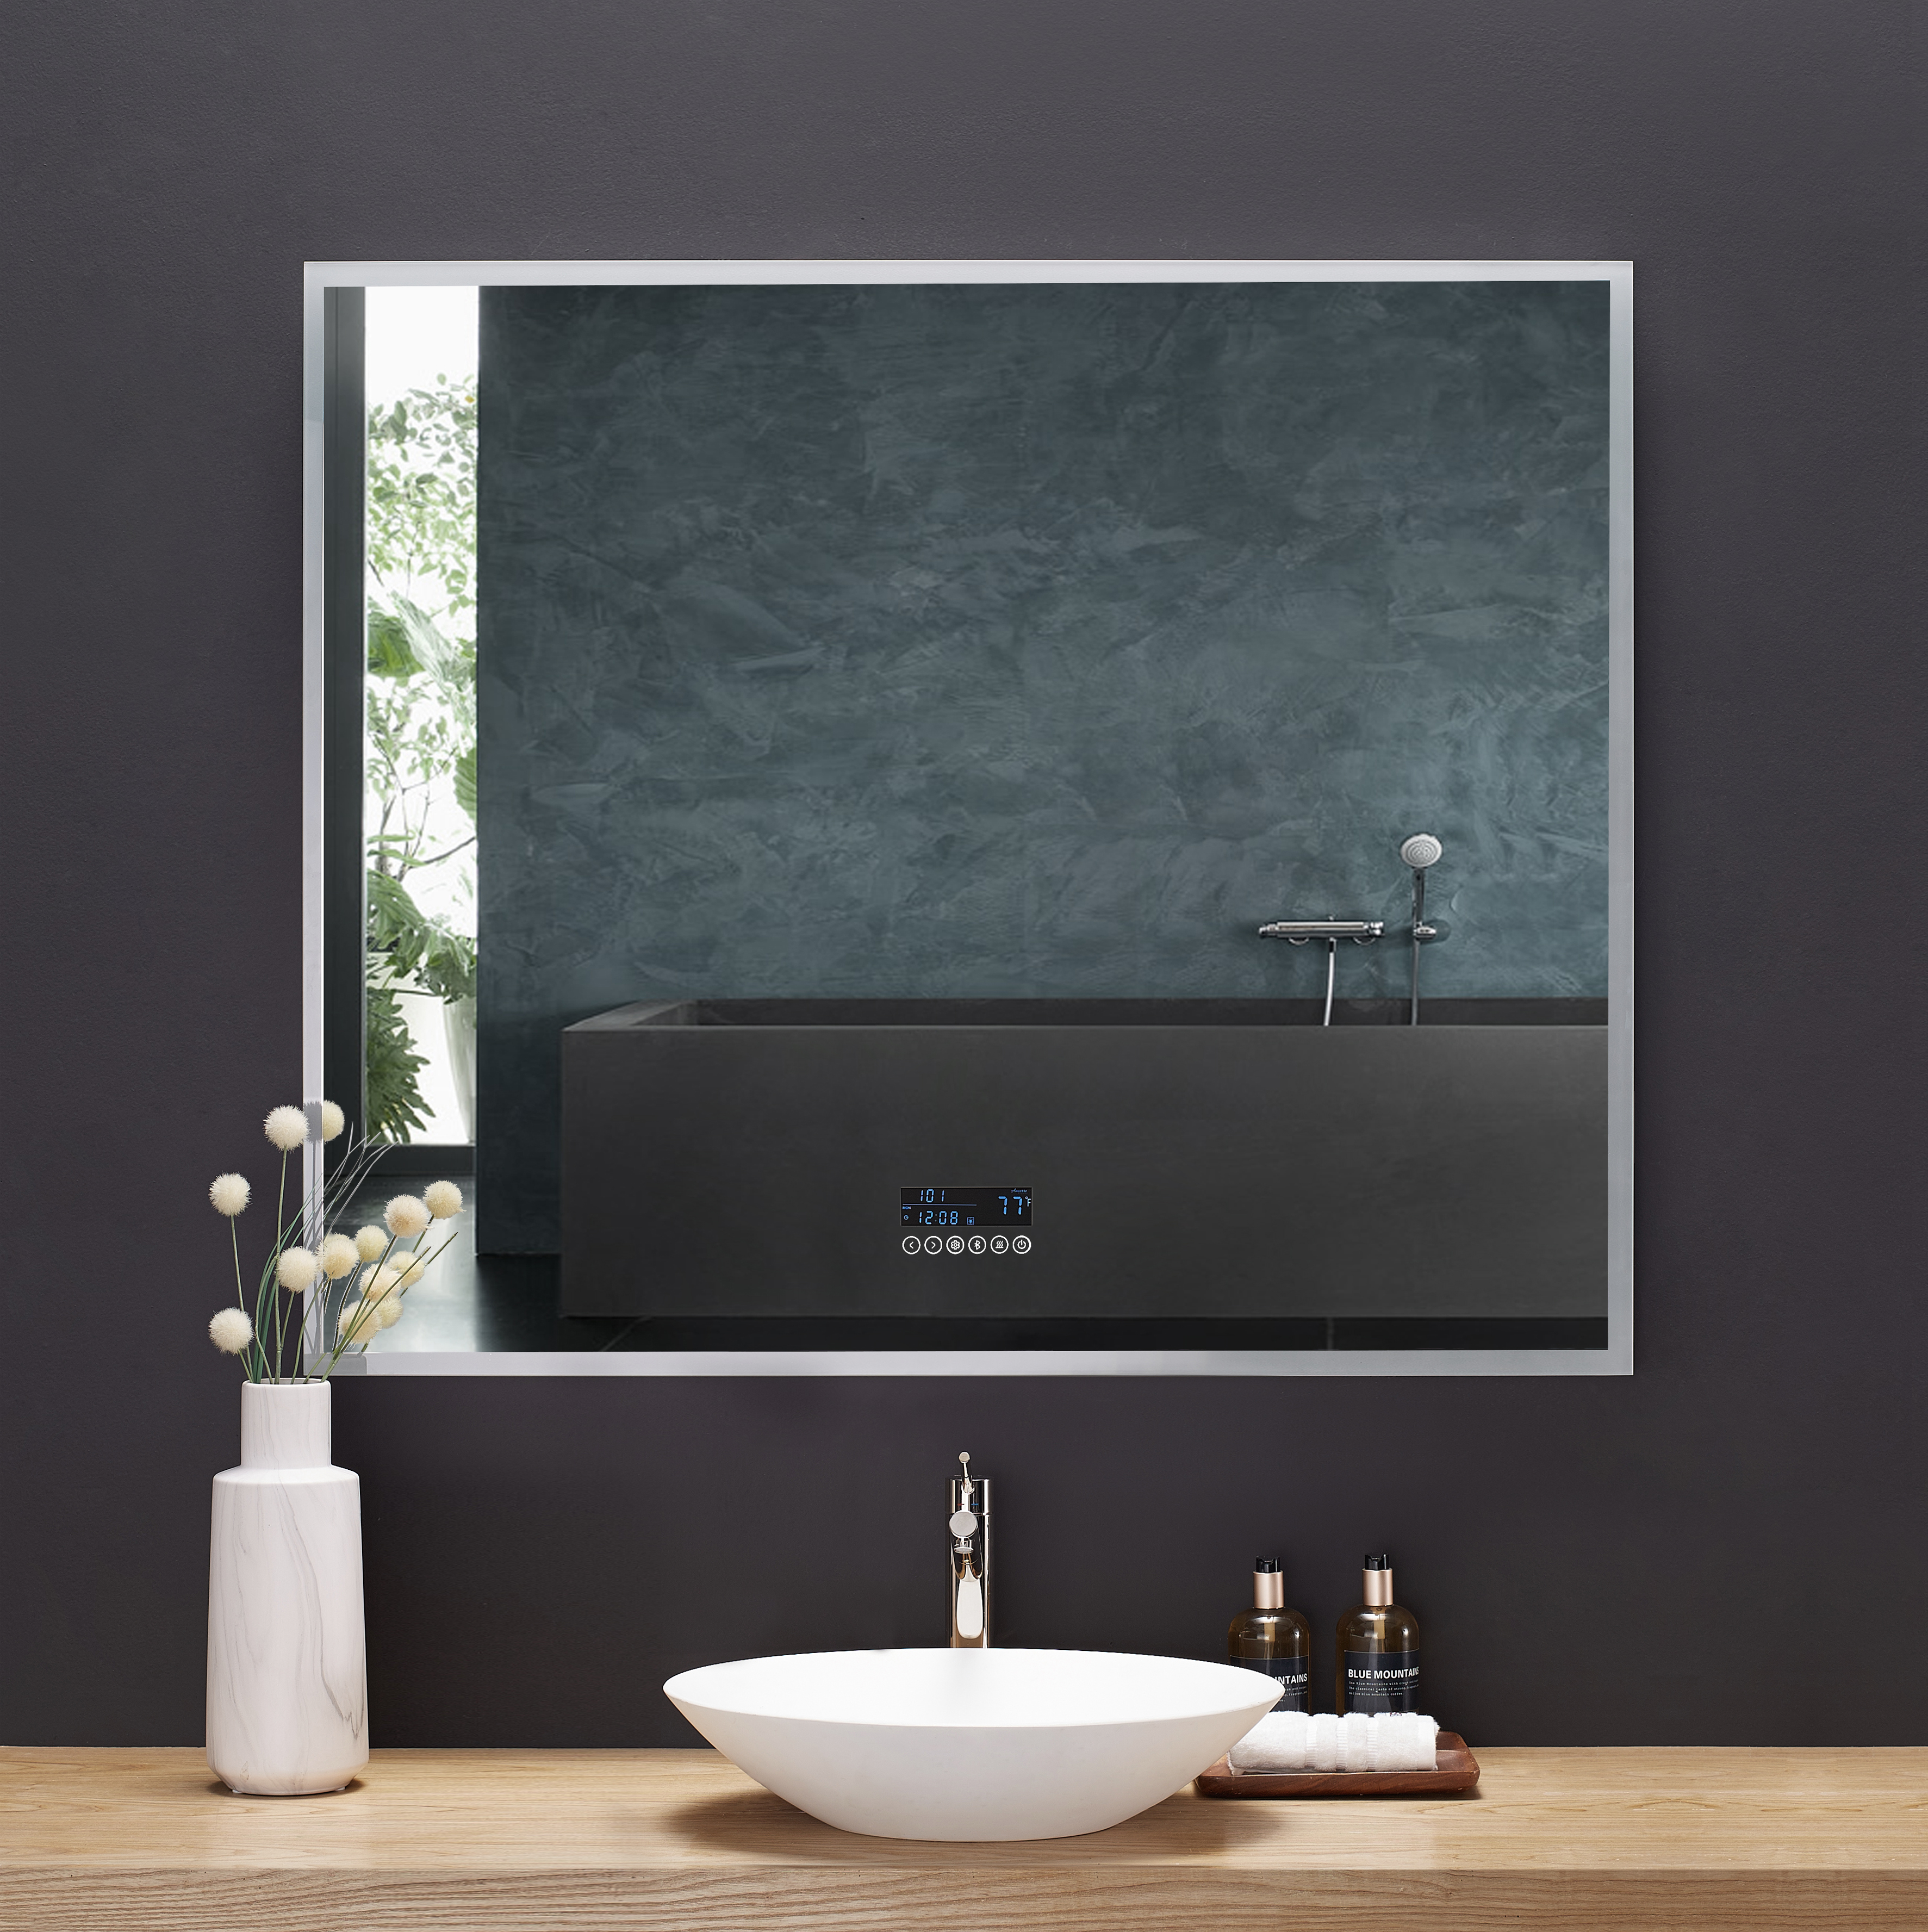 48 in. x 40 in. LED Frameless Mirror with Bluetooth, Defogger and Digital Display